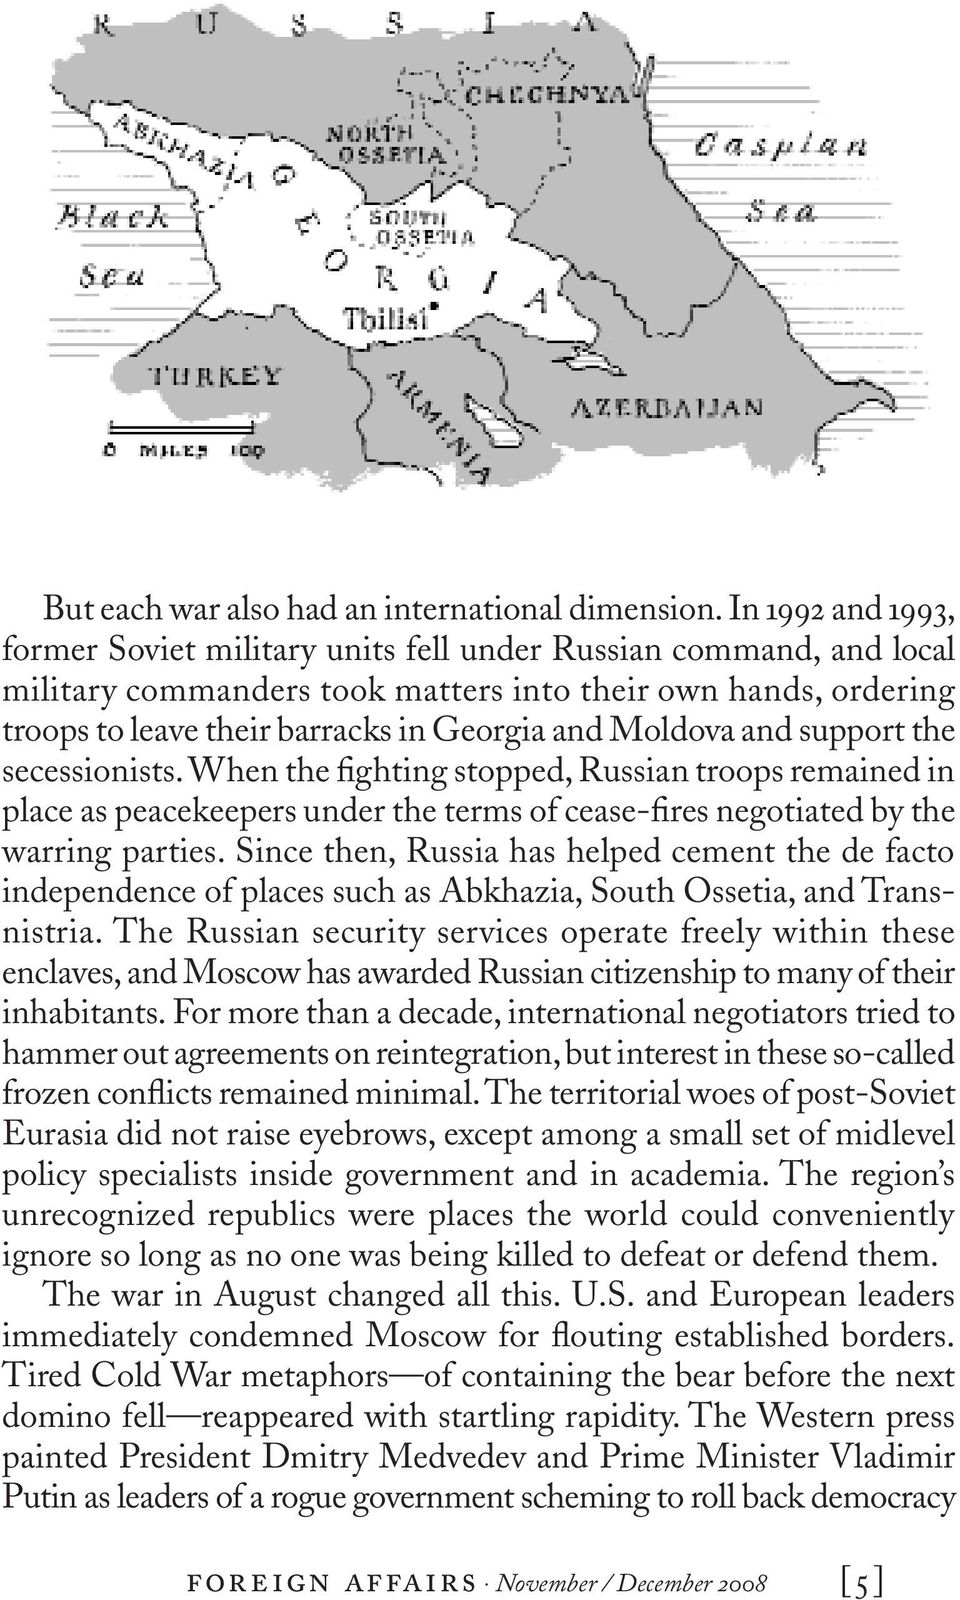 Moldova and support the secessionists. When the fighting stopped, Russian troops remained in place as peacekeepers under the terms of cease-fires negotiated by the warring parties.